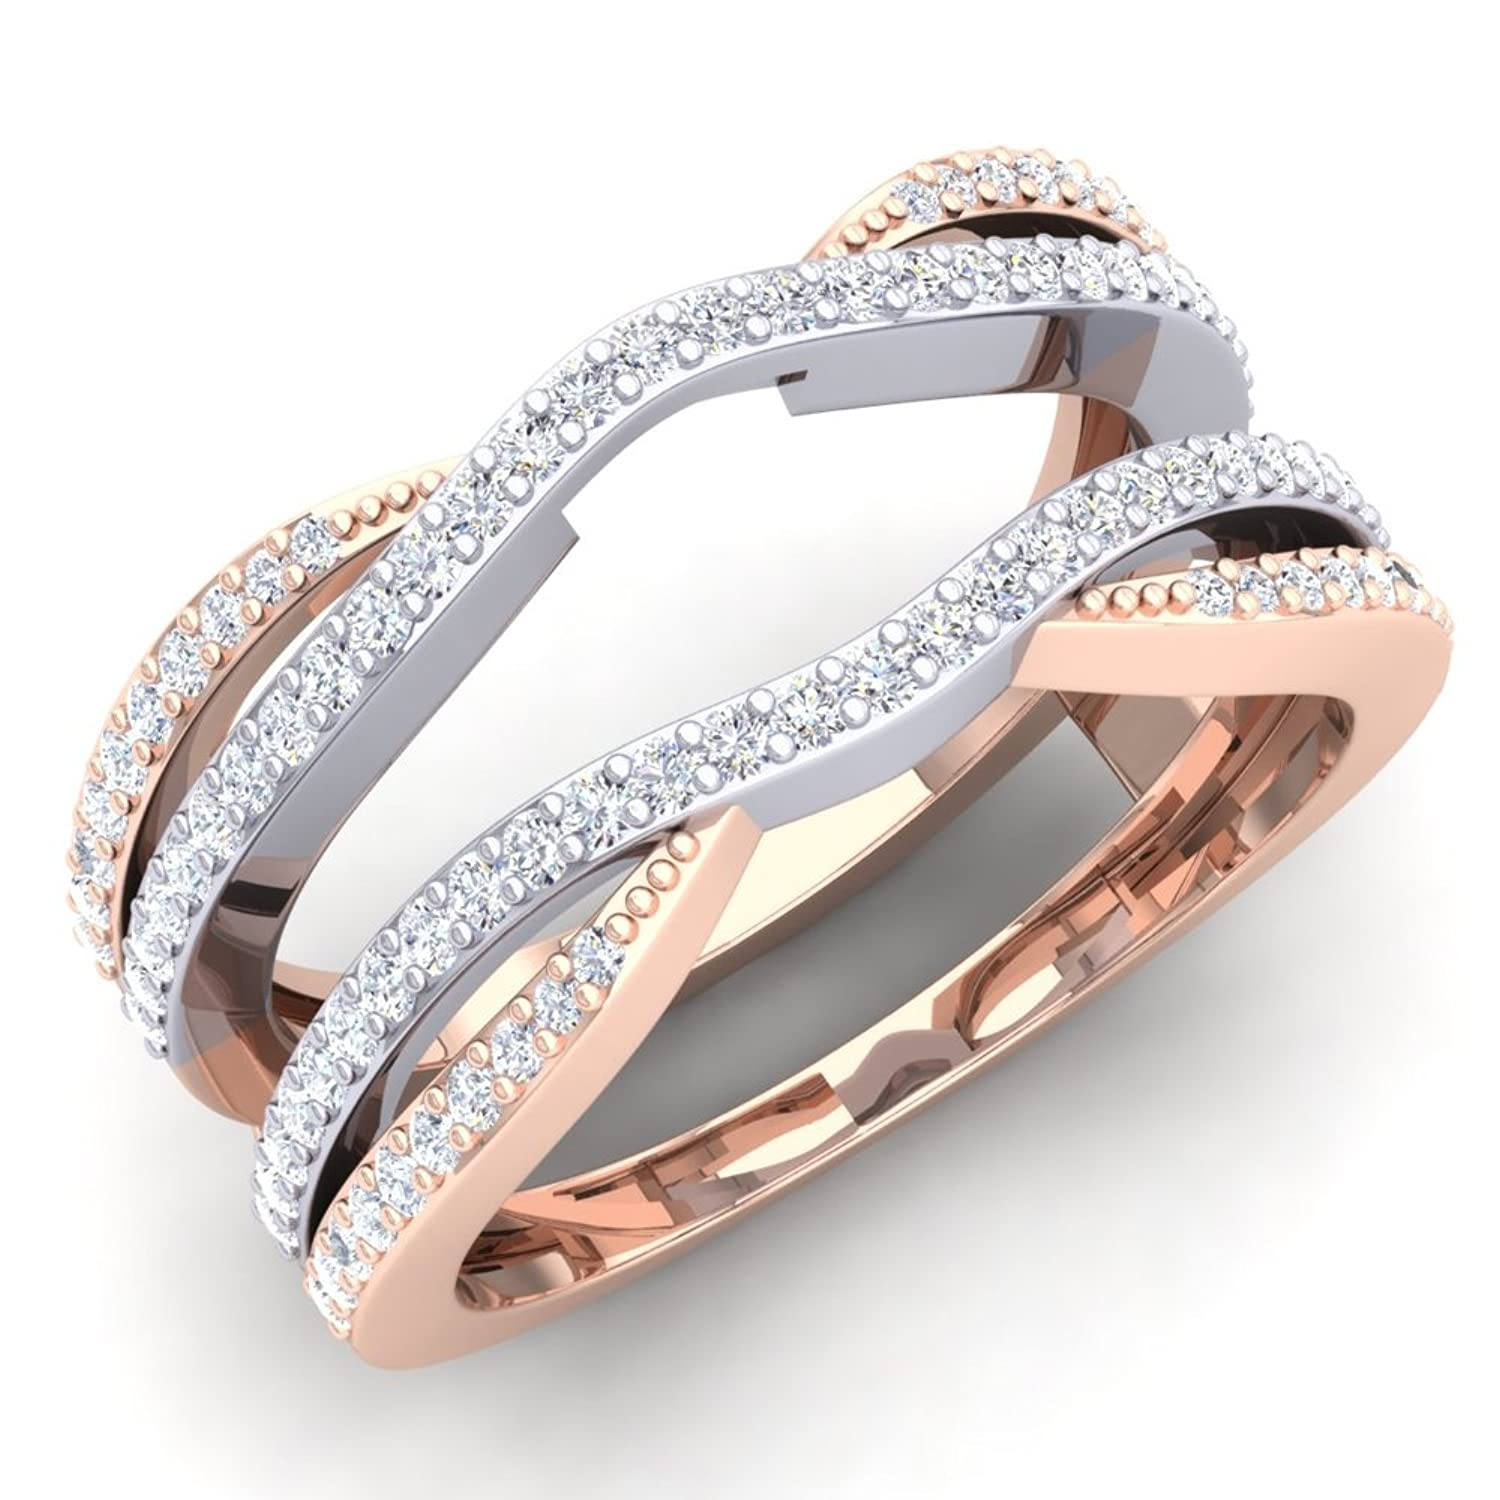 wedding bands inexpensive engagement gold best thisbestidea and rings ideas stoneless by unique in inspiration